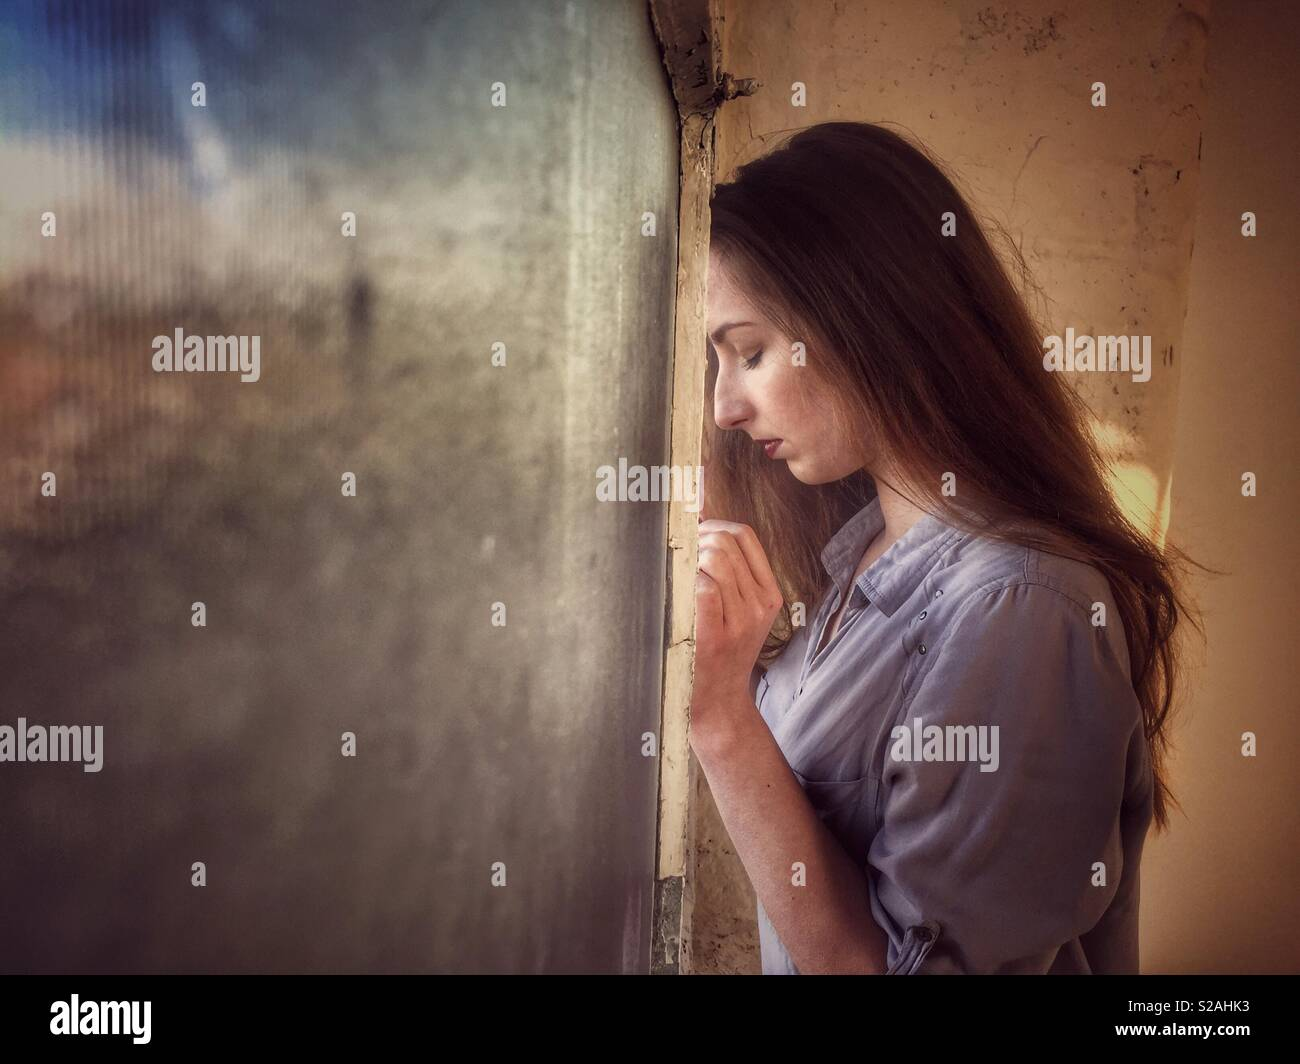 Sad woman leaning against the window - Stock Image